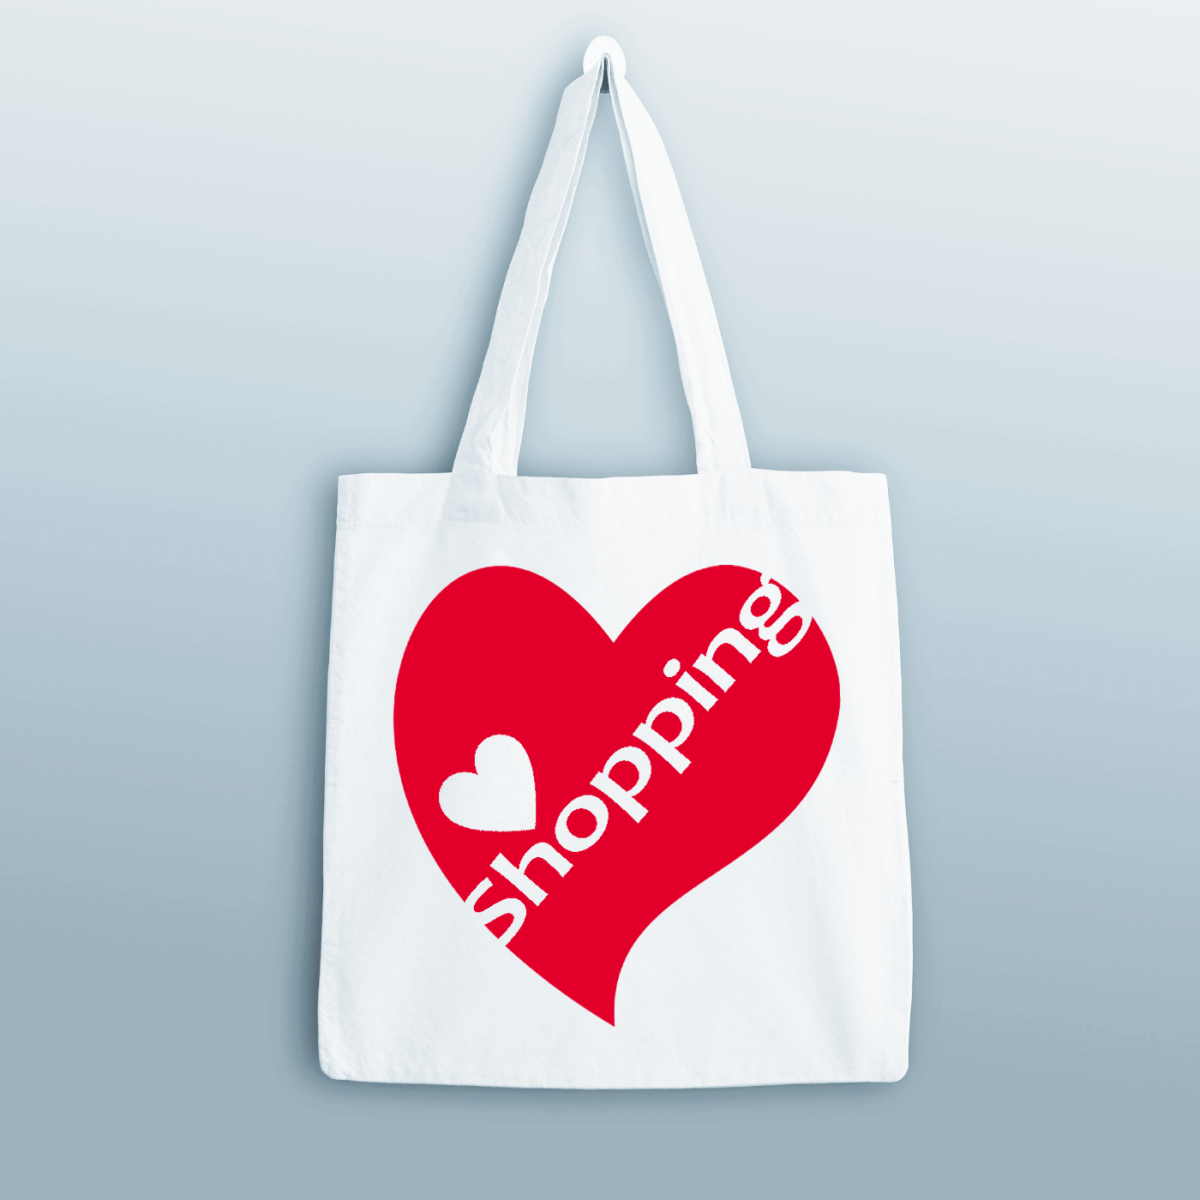 Tote Bags - Shopping